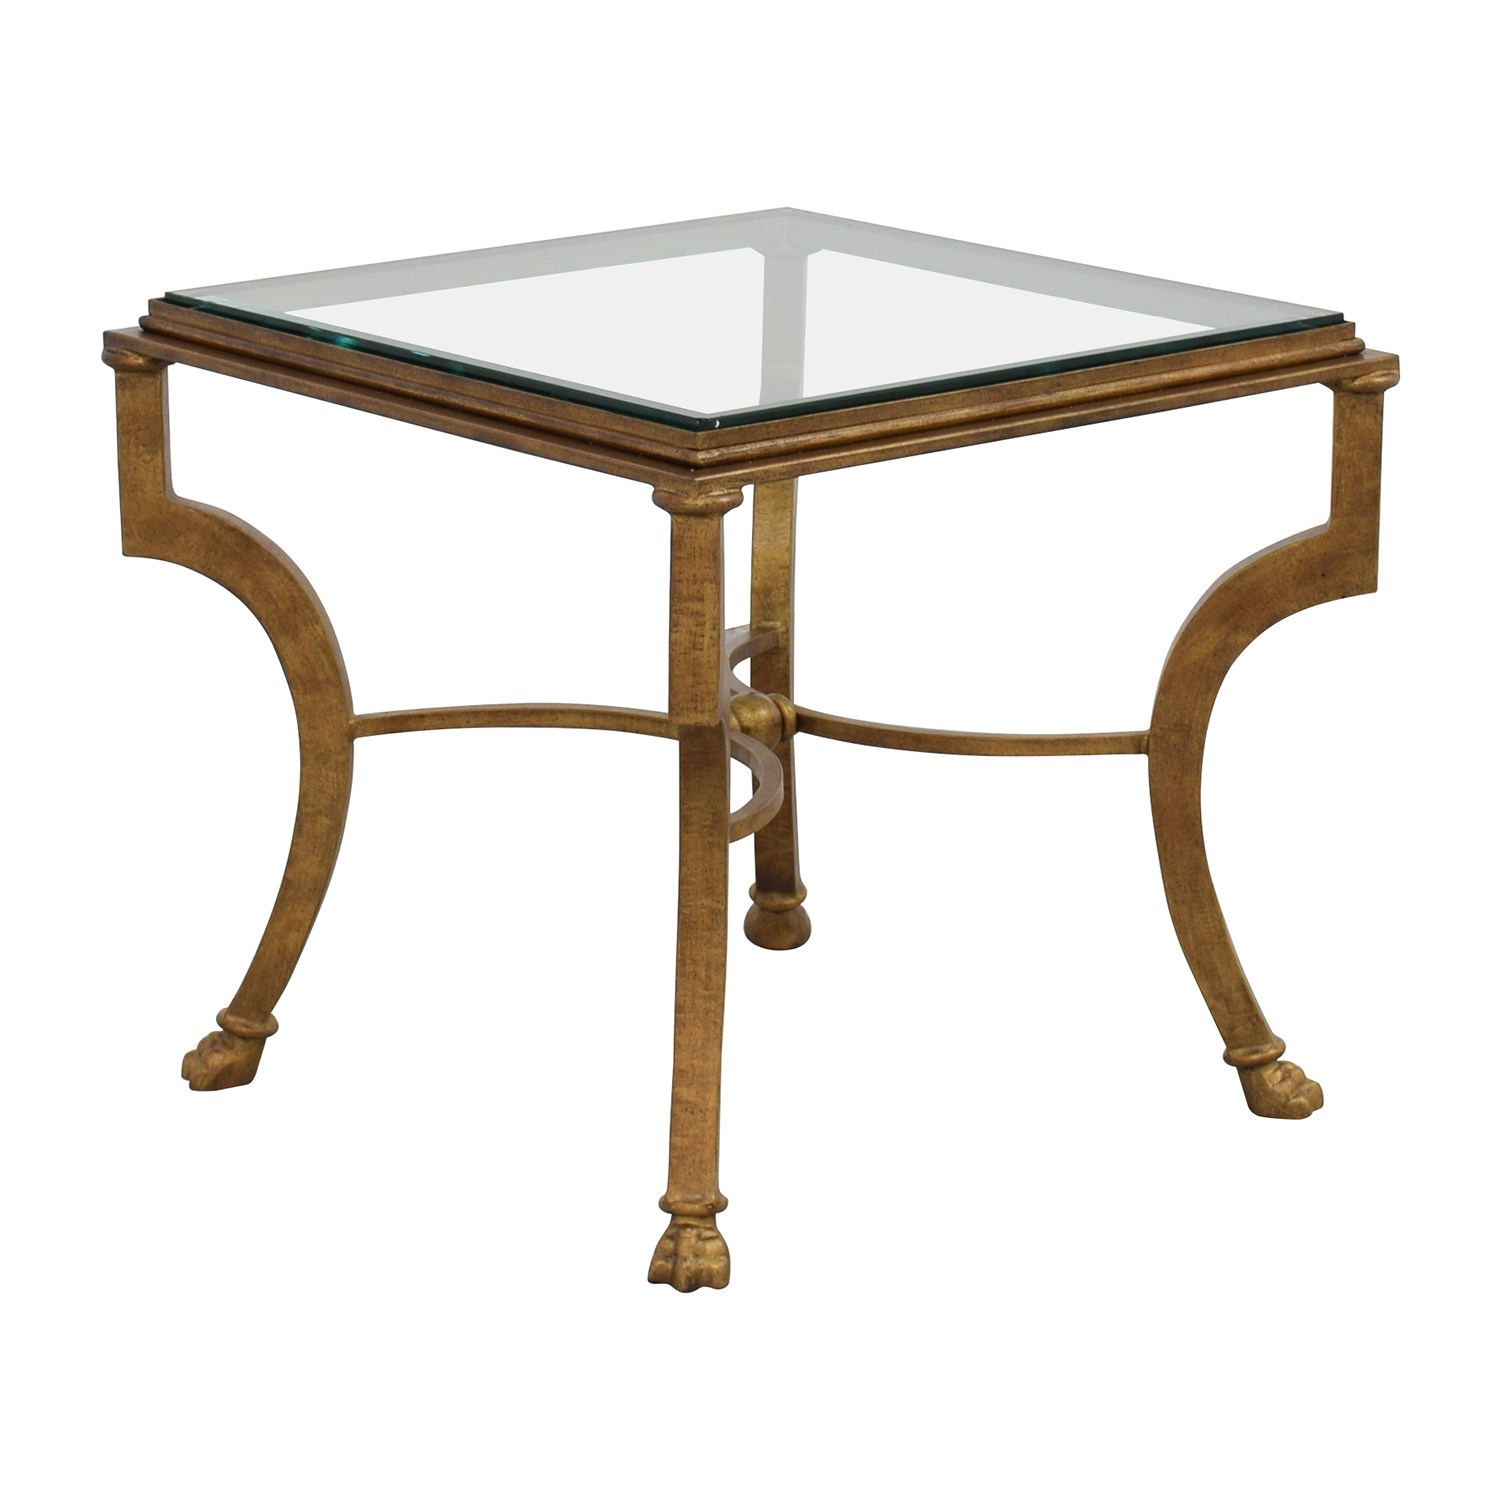 Square Antique Gold Side Table with Glass Top / Tables